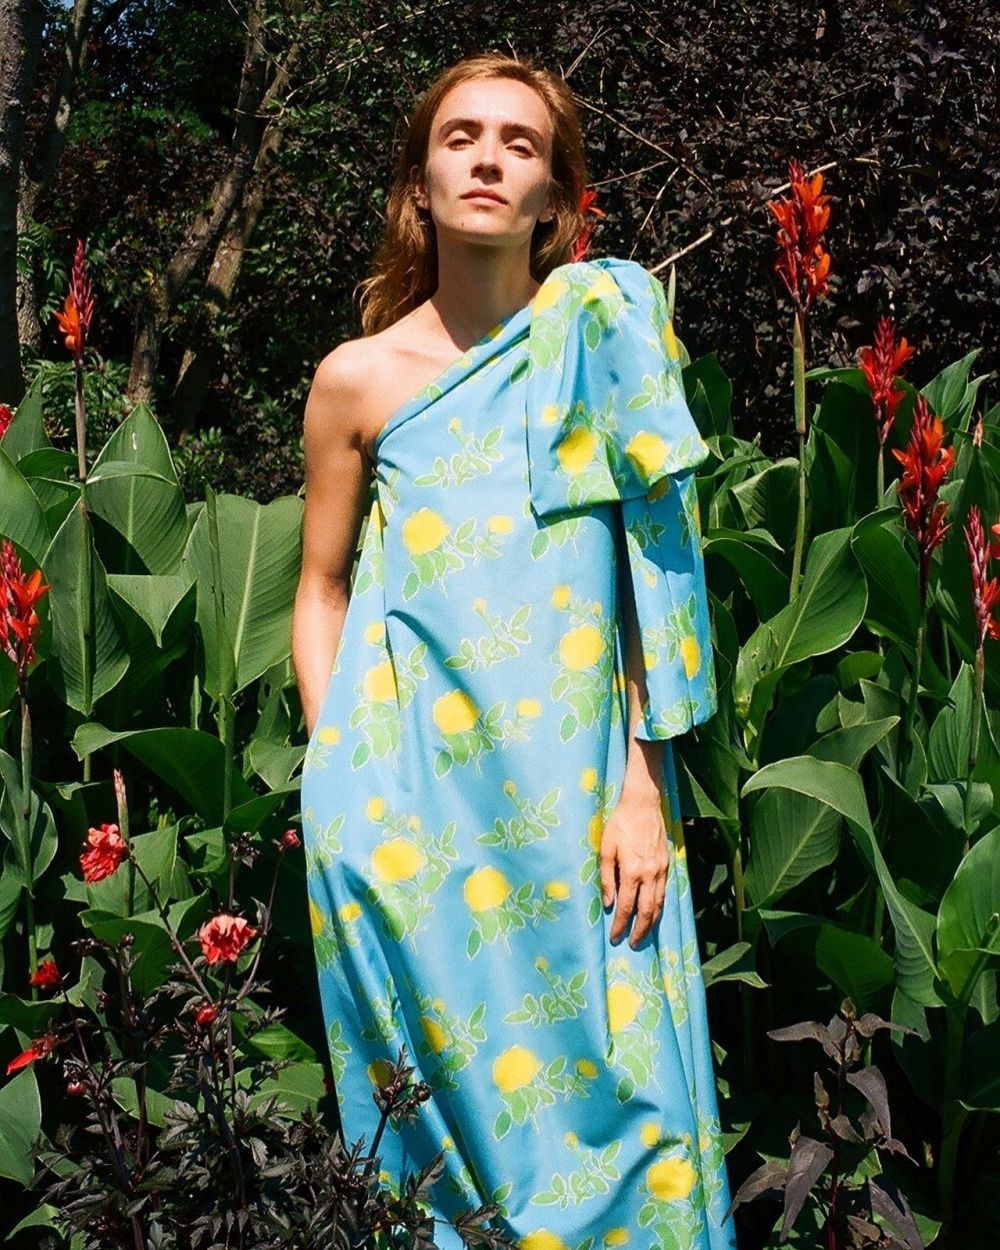 THE ESCAPE ~ ANALOG PHOTOS SHOT BY CHARLOTTE ~ LYNN WEARING THE BLUE WINNIE DRESS. 🌿🌼🦋 Now available at selected stores worldwide. #HS20